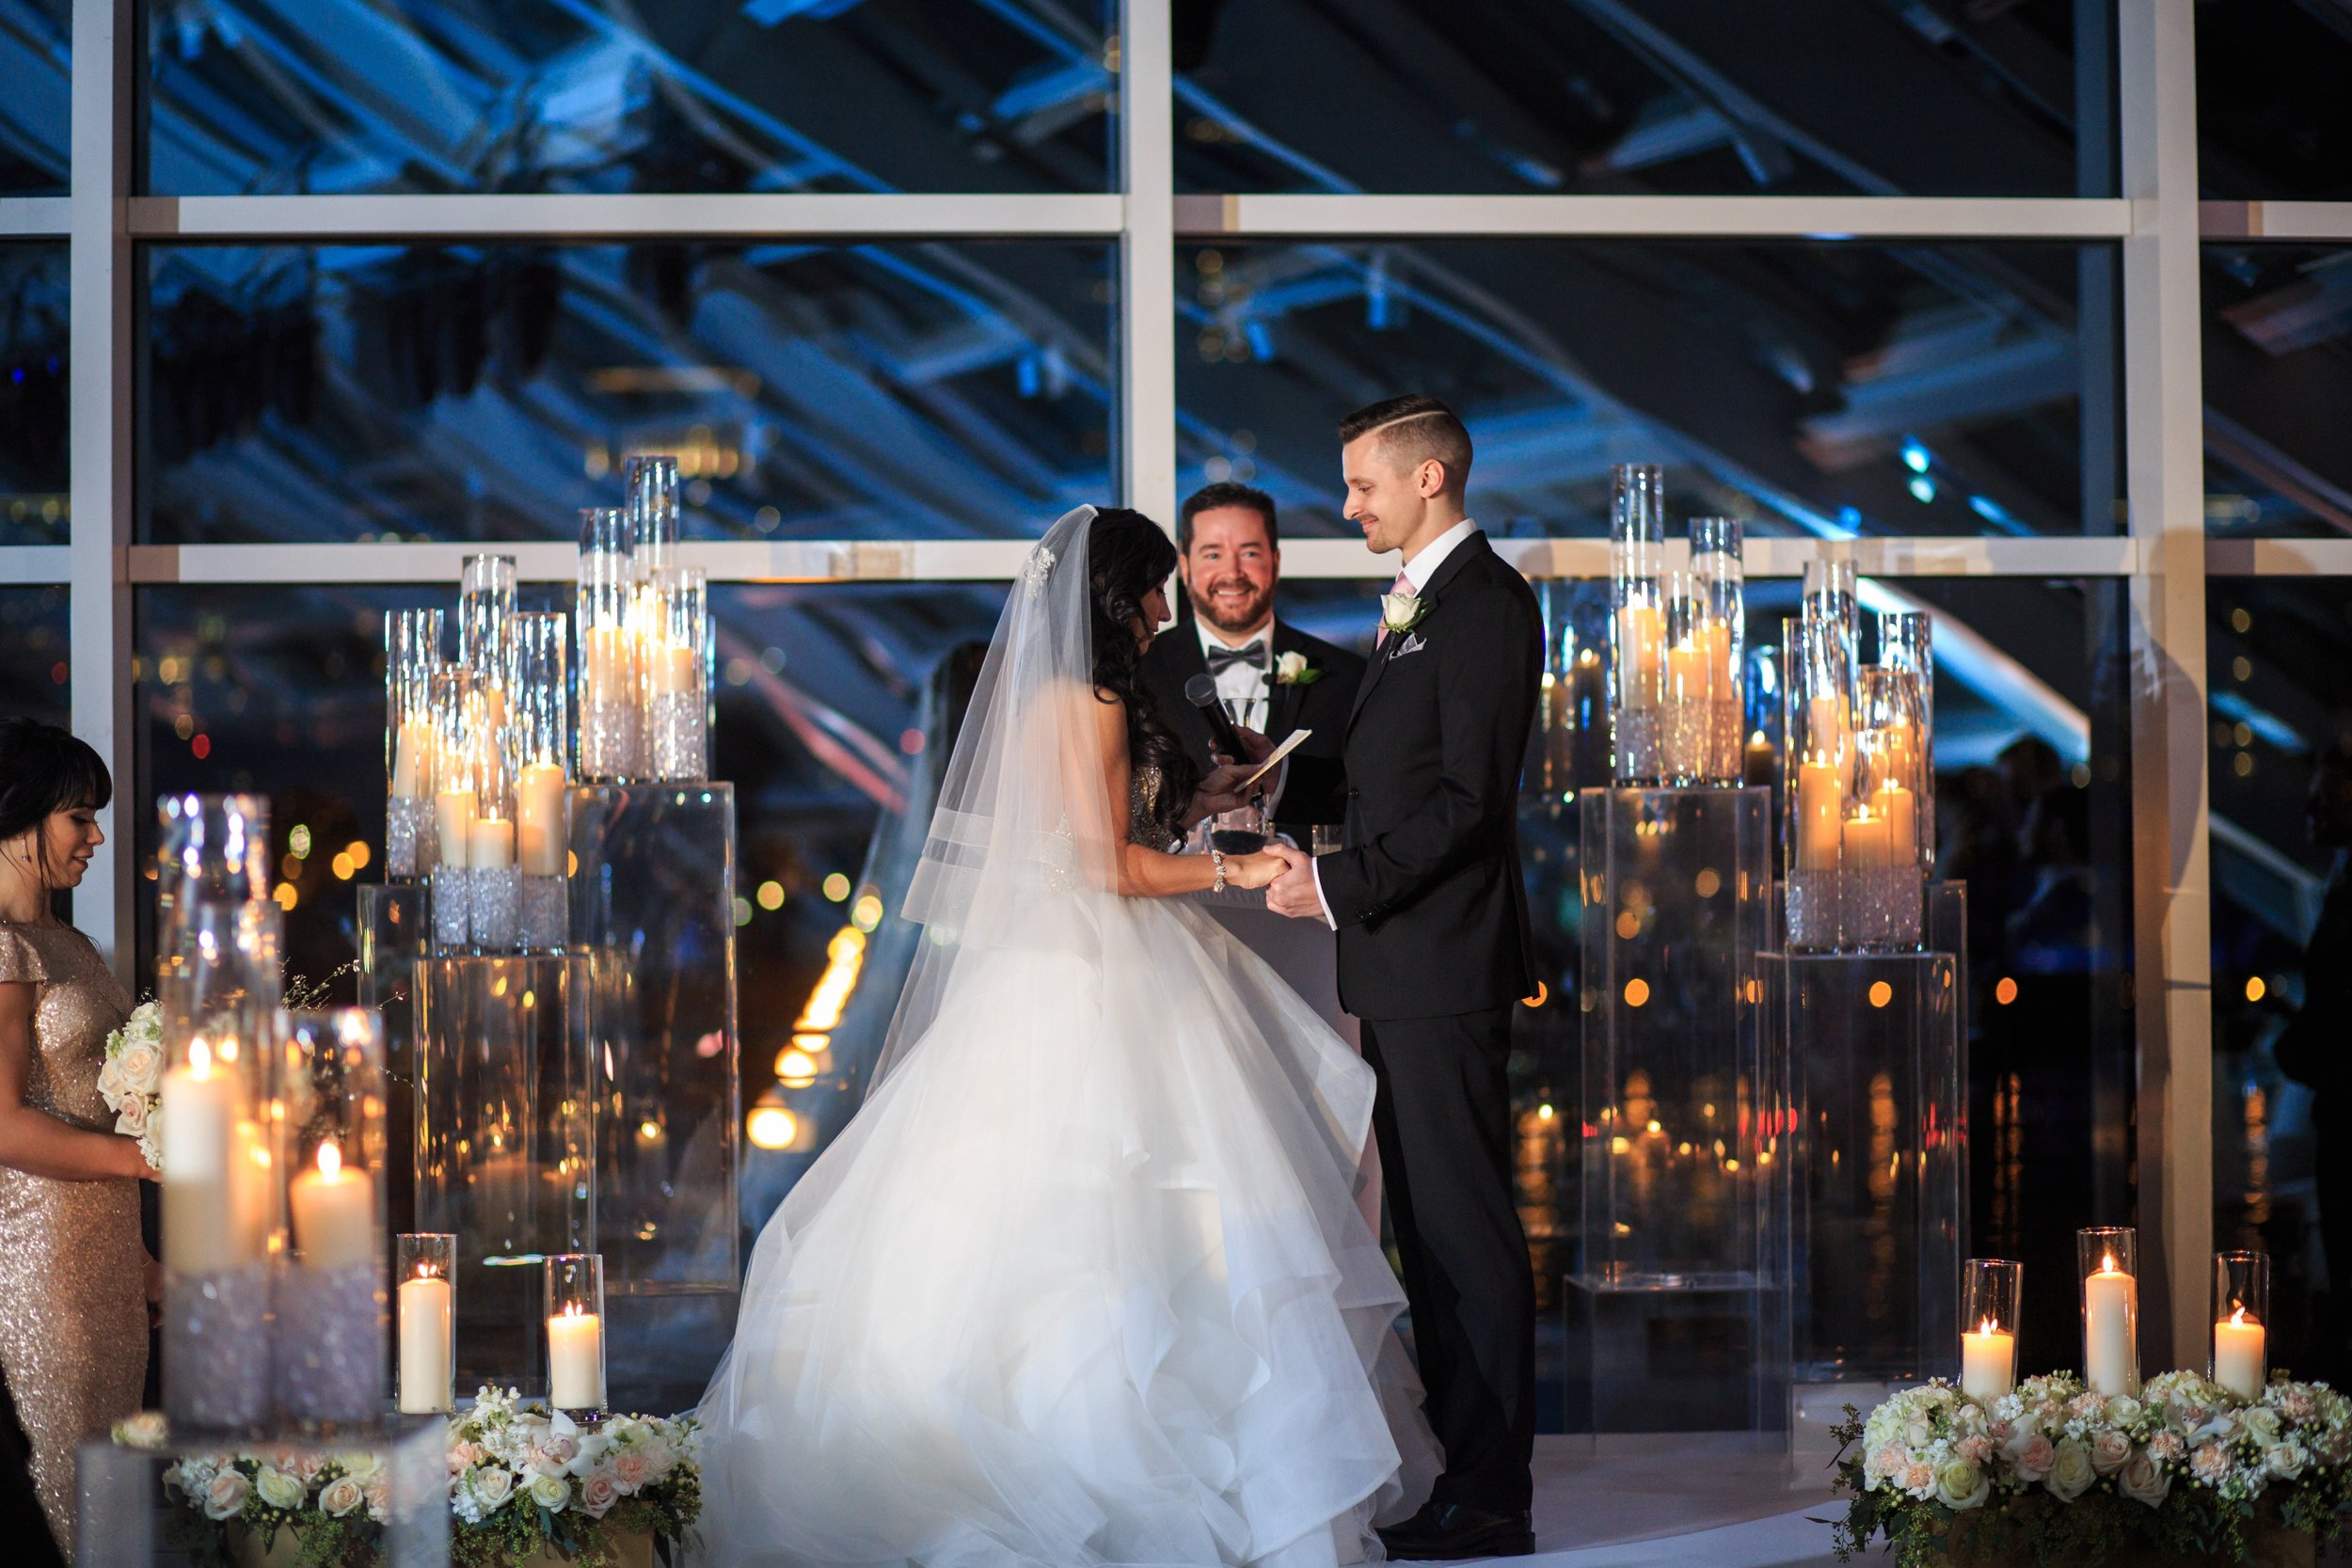 """Deb Barry - """"Your mood boards for Jessica's wedding was the beginning of a fairytale and a day full of beauty and awe, as your vision became reality. Forever grateful! Better than all the rest! You are the bomb diggity!"""""""